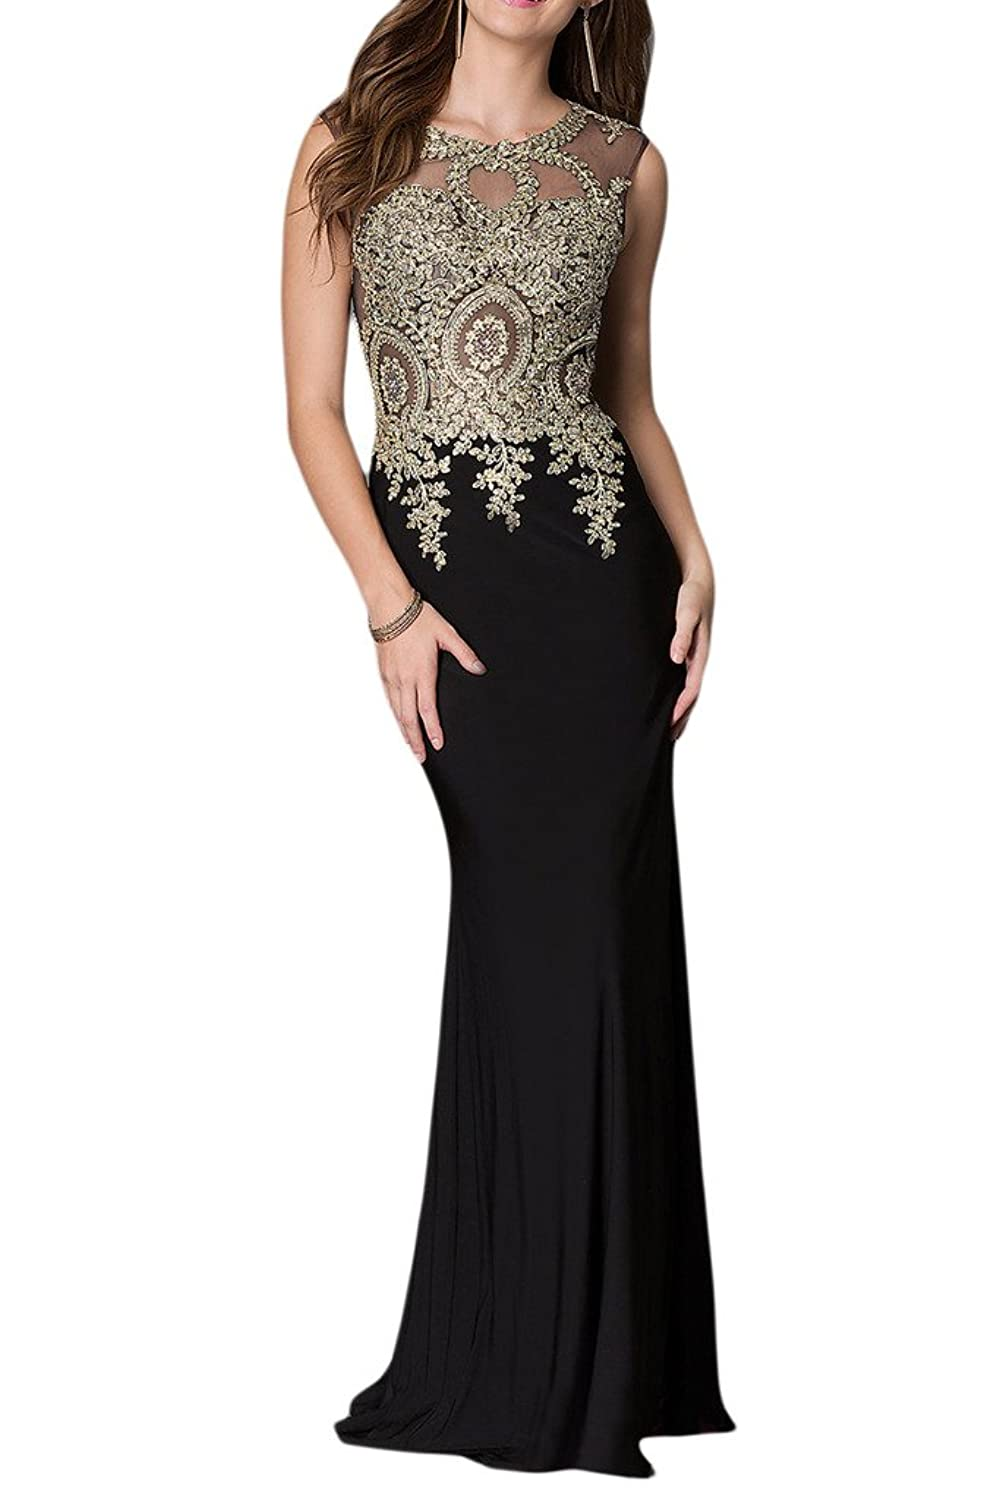 Sunvary Sheath V-Back Full Length Chiffon Evening Dresses Party Gowns